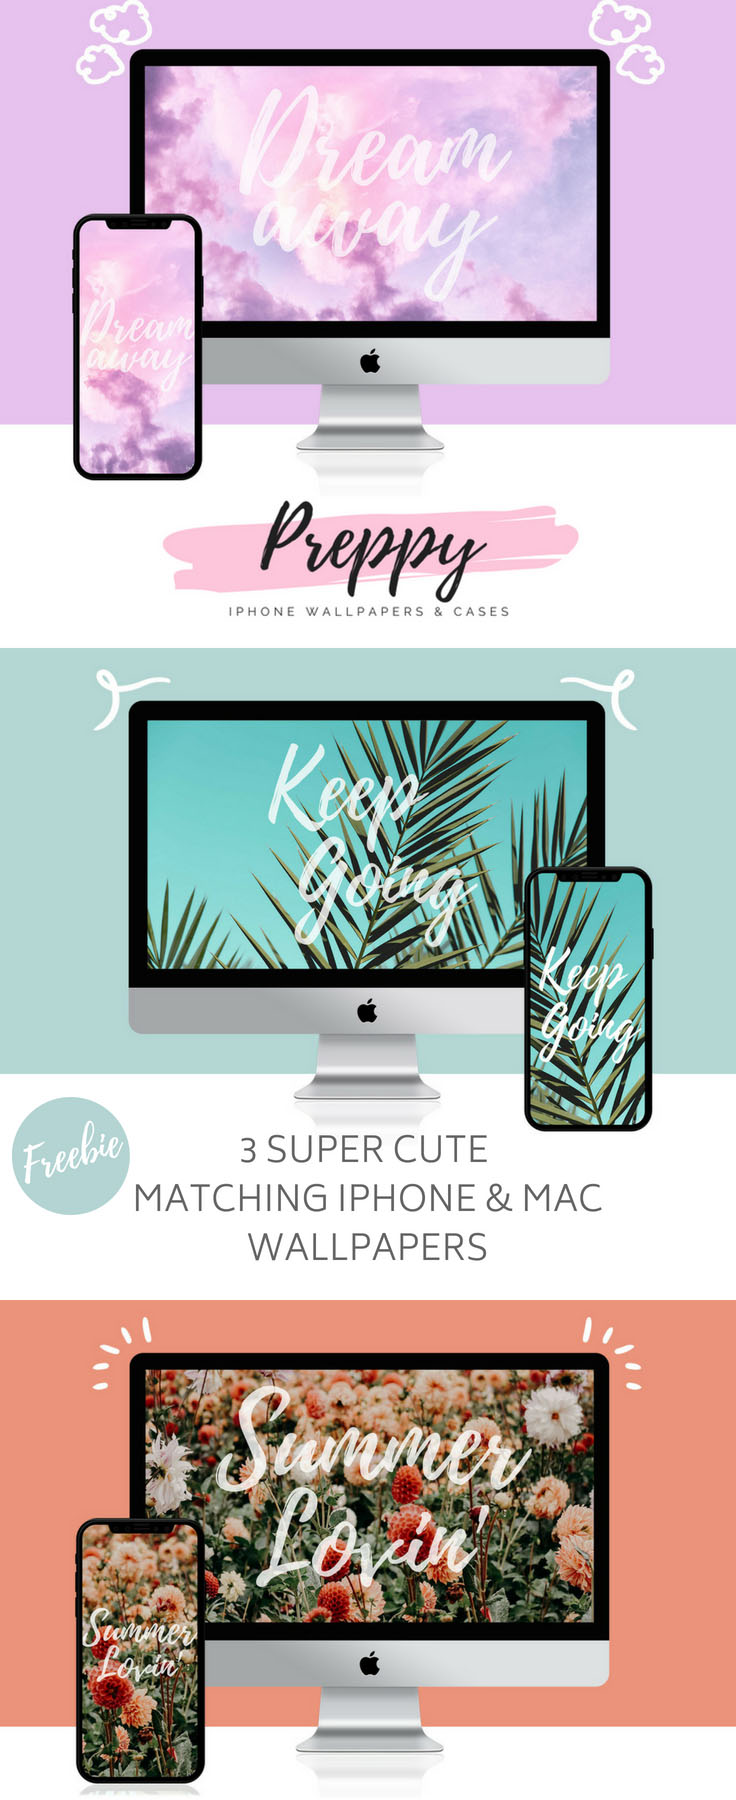 Iphone X Rose Gold Wallpaper 3 Super Cute Matching Iphone Amp Mac Wallpapers Preppy